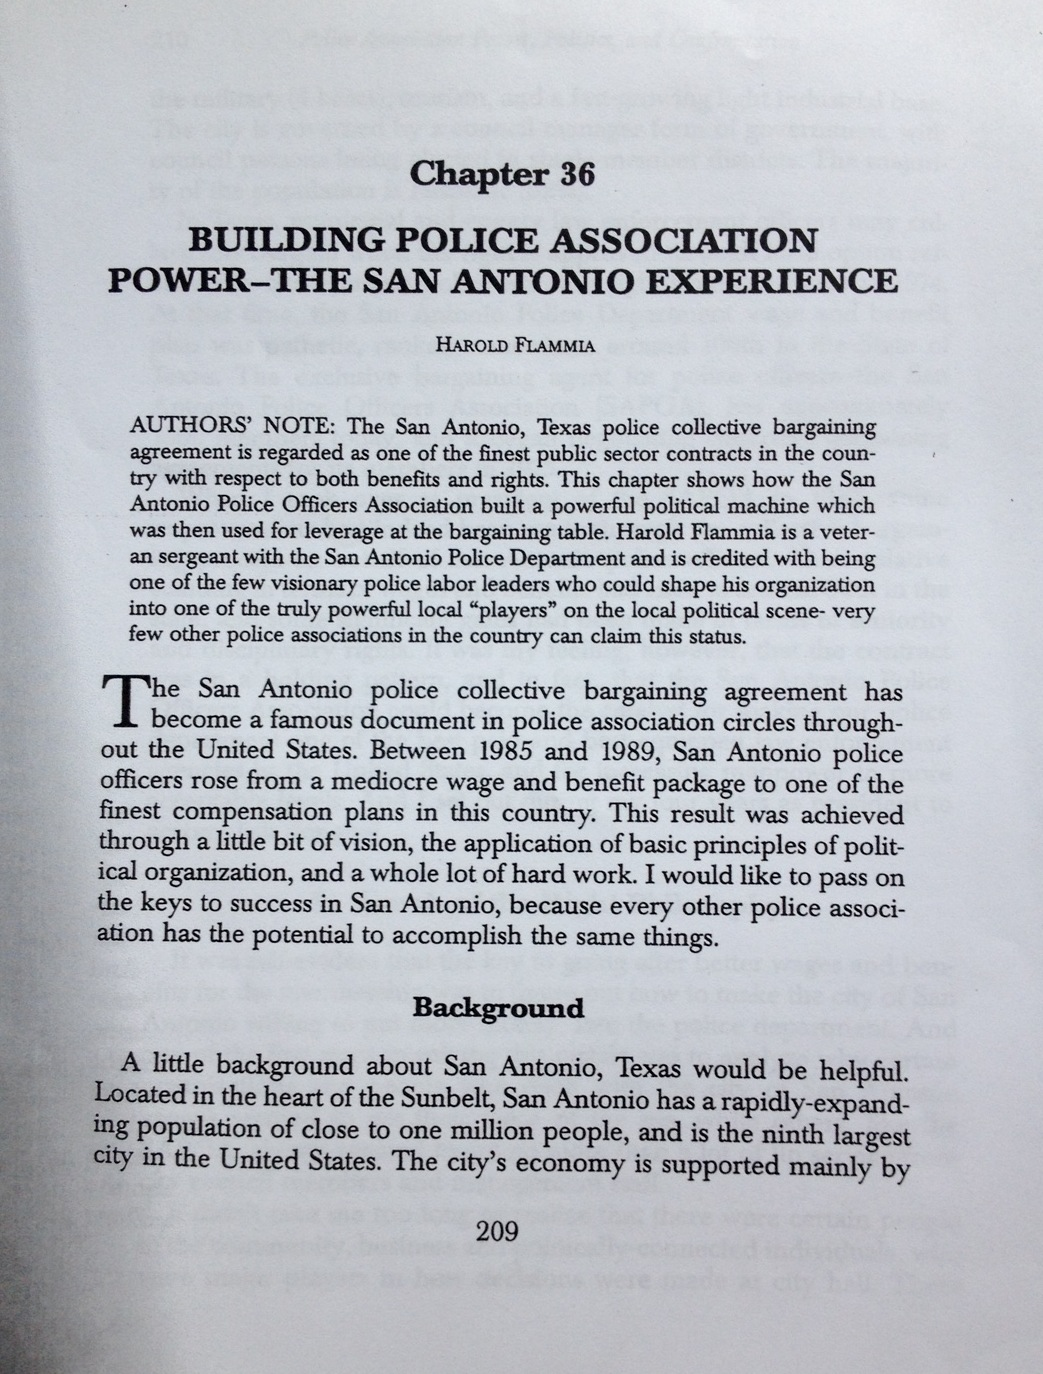 """Chapter 36 of """"Police Union Power, Politics, And Confrontation in the 21st Century"""" titled """"Building Police Association Power-The San Antonio Experience"""", has been removed from the second edition of the book."""